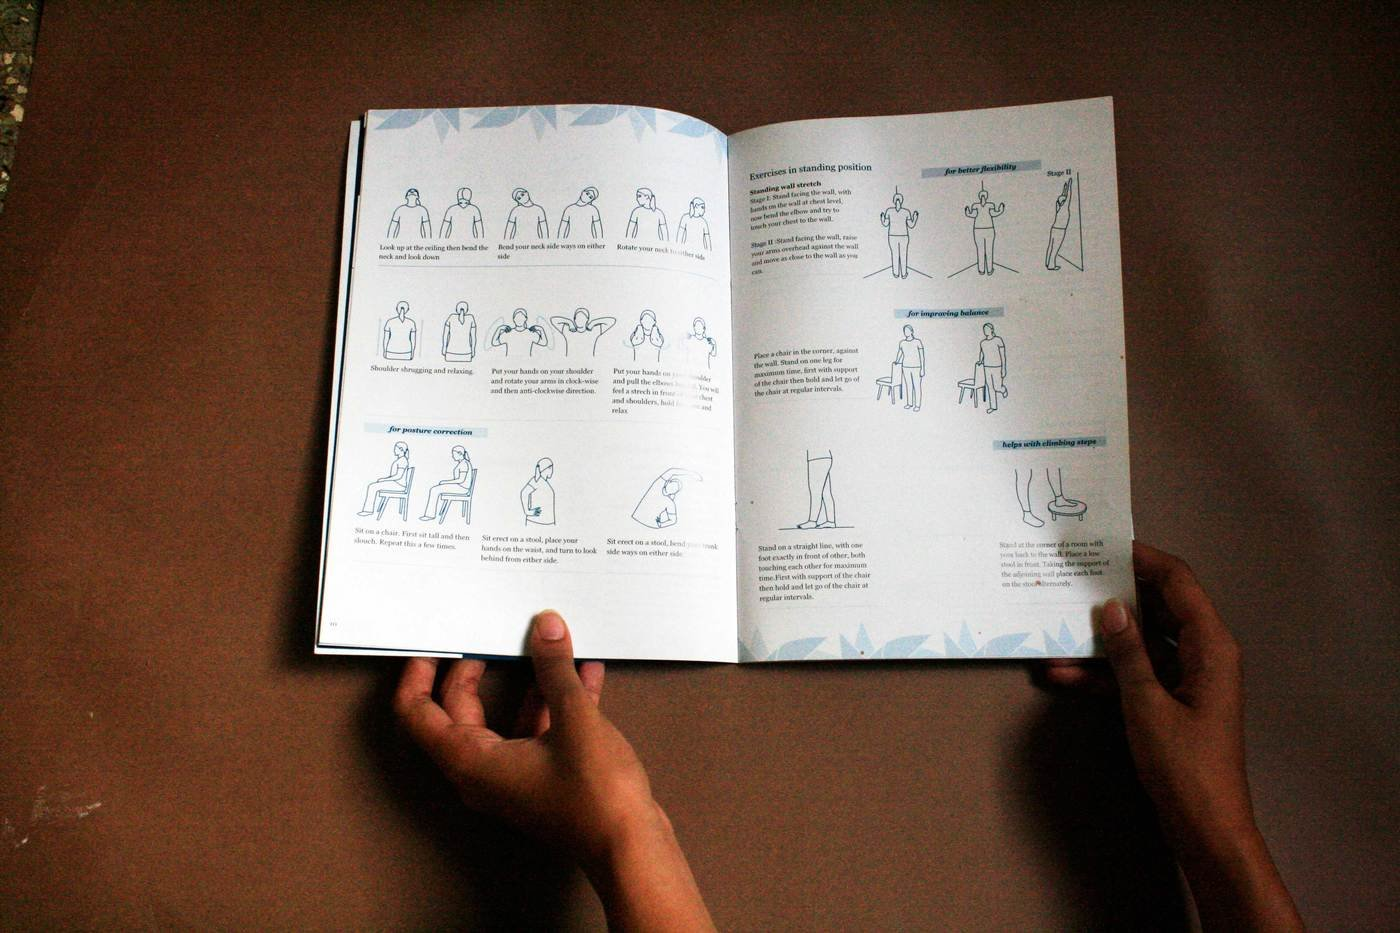 Parkinsons Exercise Manual by Alannah Dsouza at Coroflot com